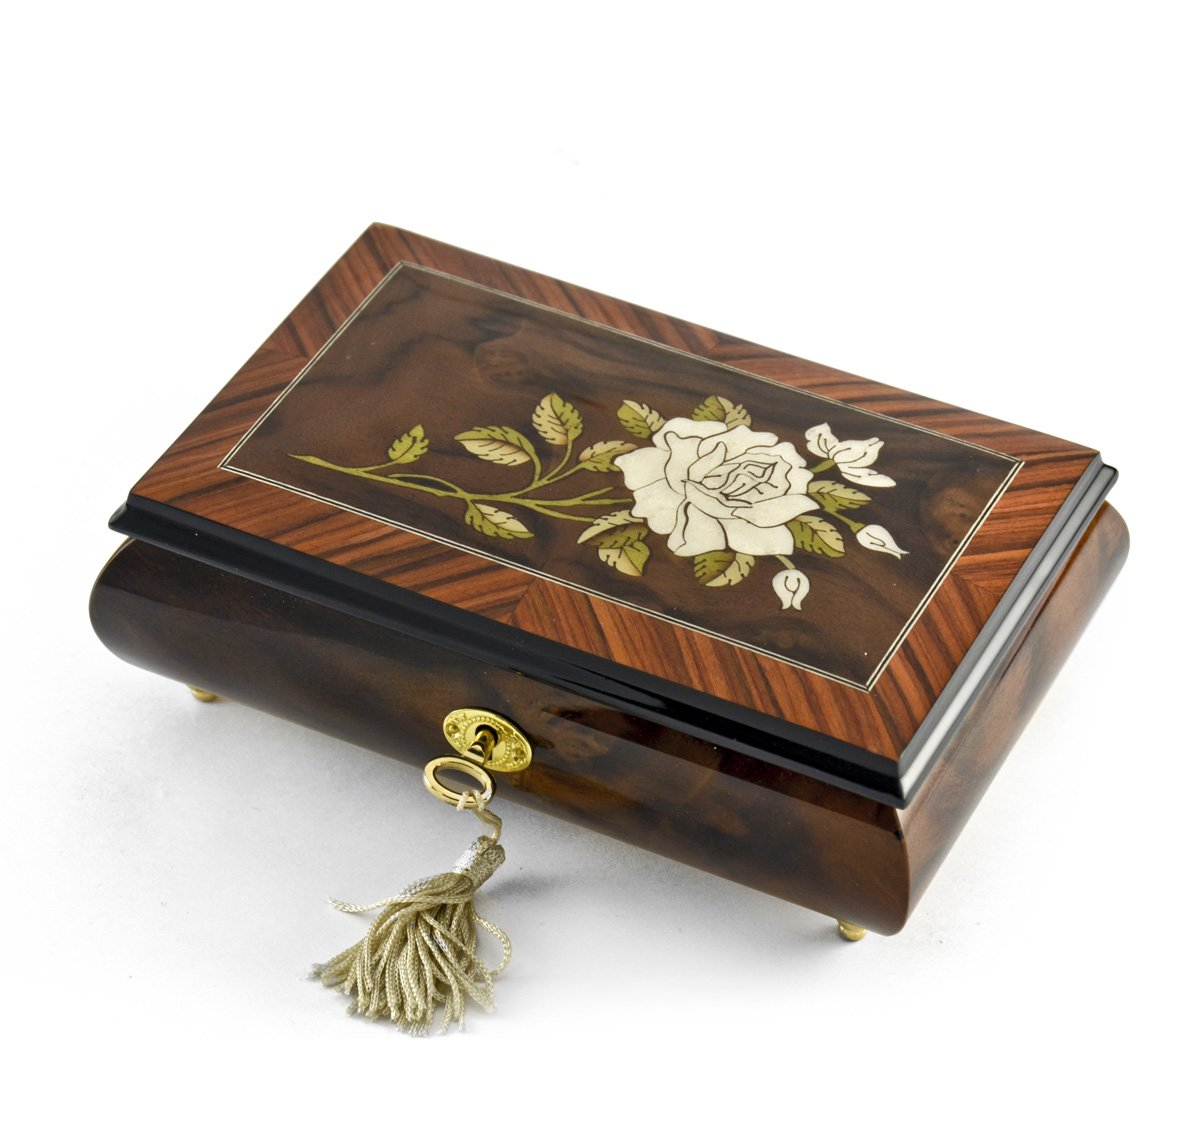 Exquisite Single Stem White Rose Musical Jewelry Box - Over 400 Song Choices - Happy Birthday